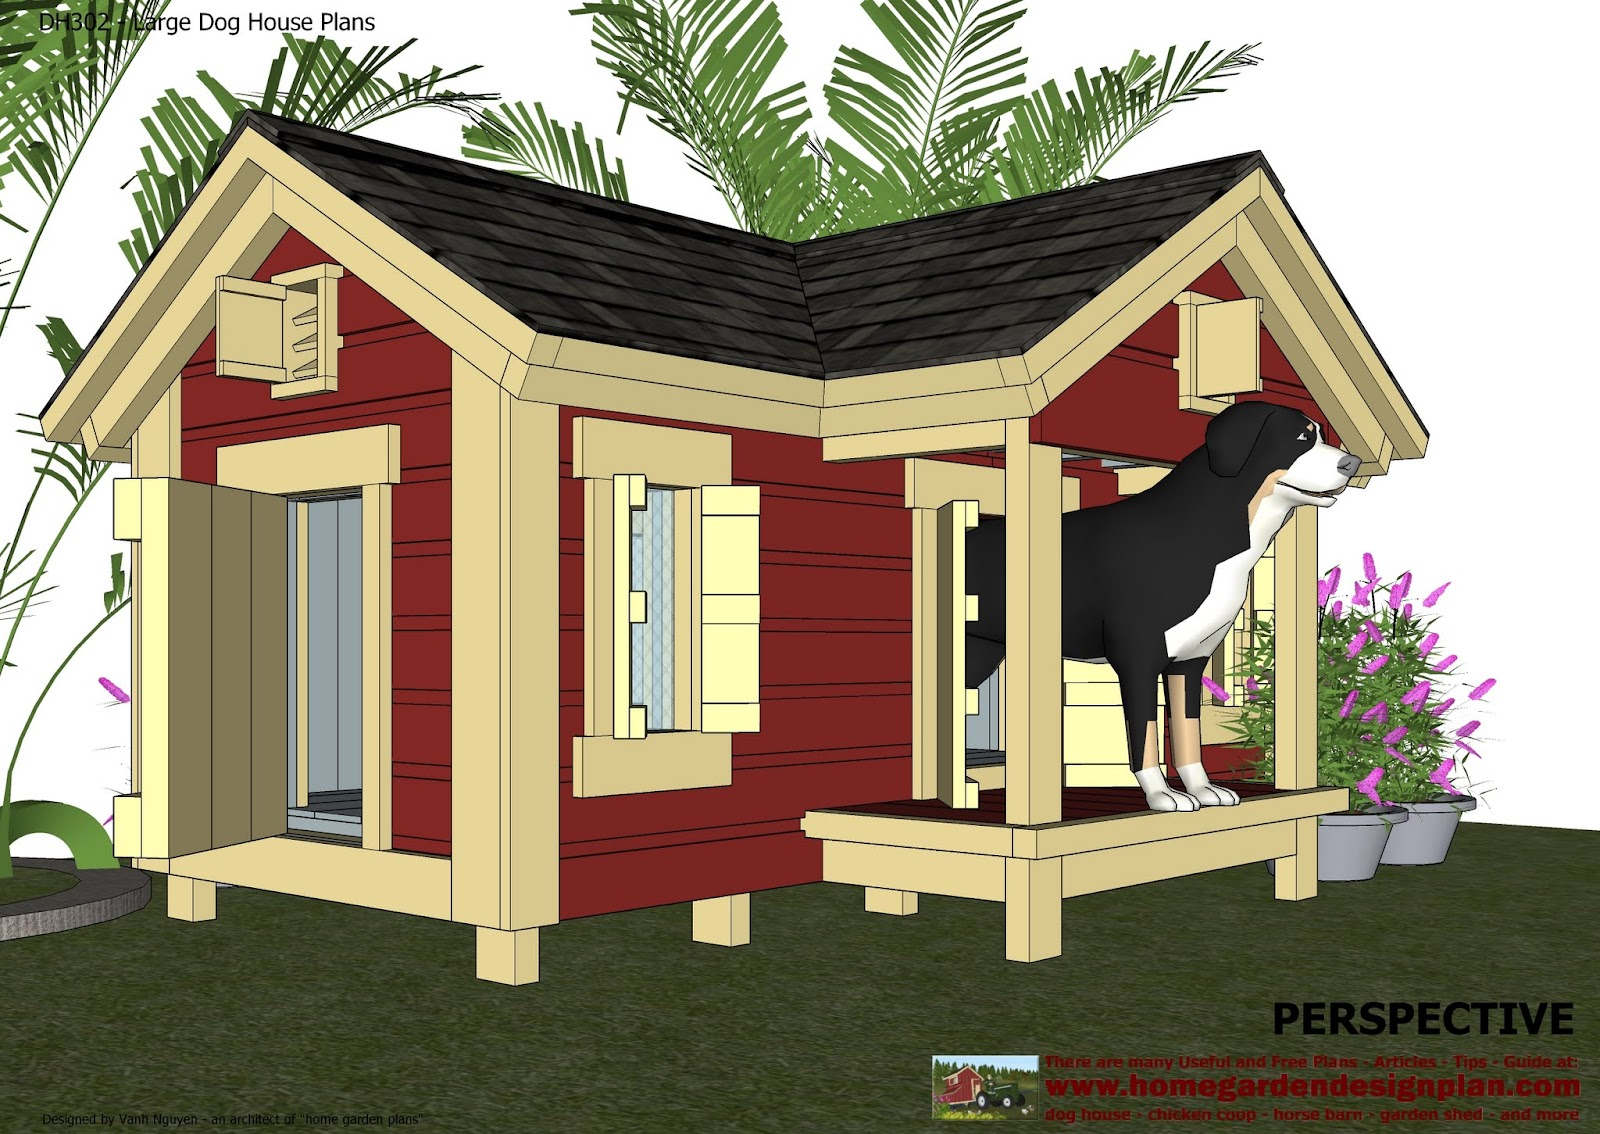 Home garden plans dh302 insulated dog house plans for House plan builder free